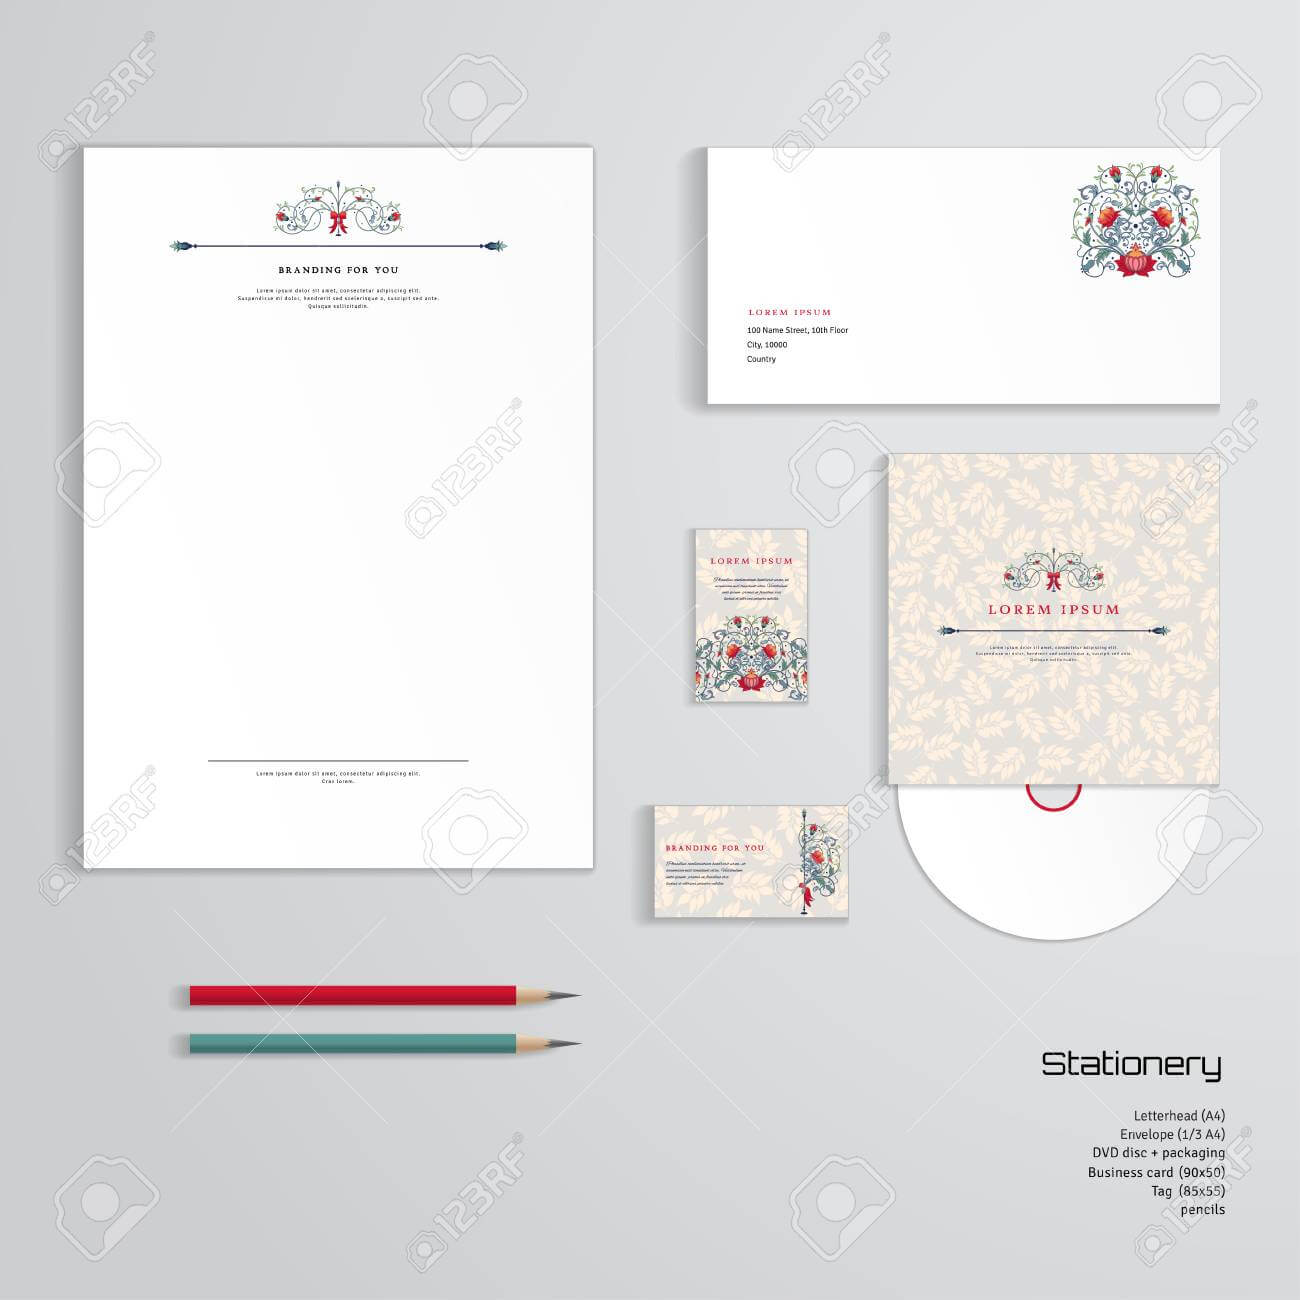 Vector Identity Templates. Letterhead, Envelope, Business Card,.. In Business Card Letterhead Envelope Template